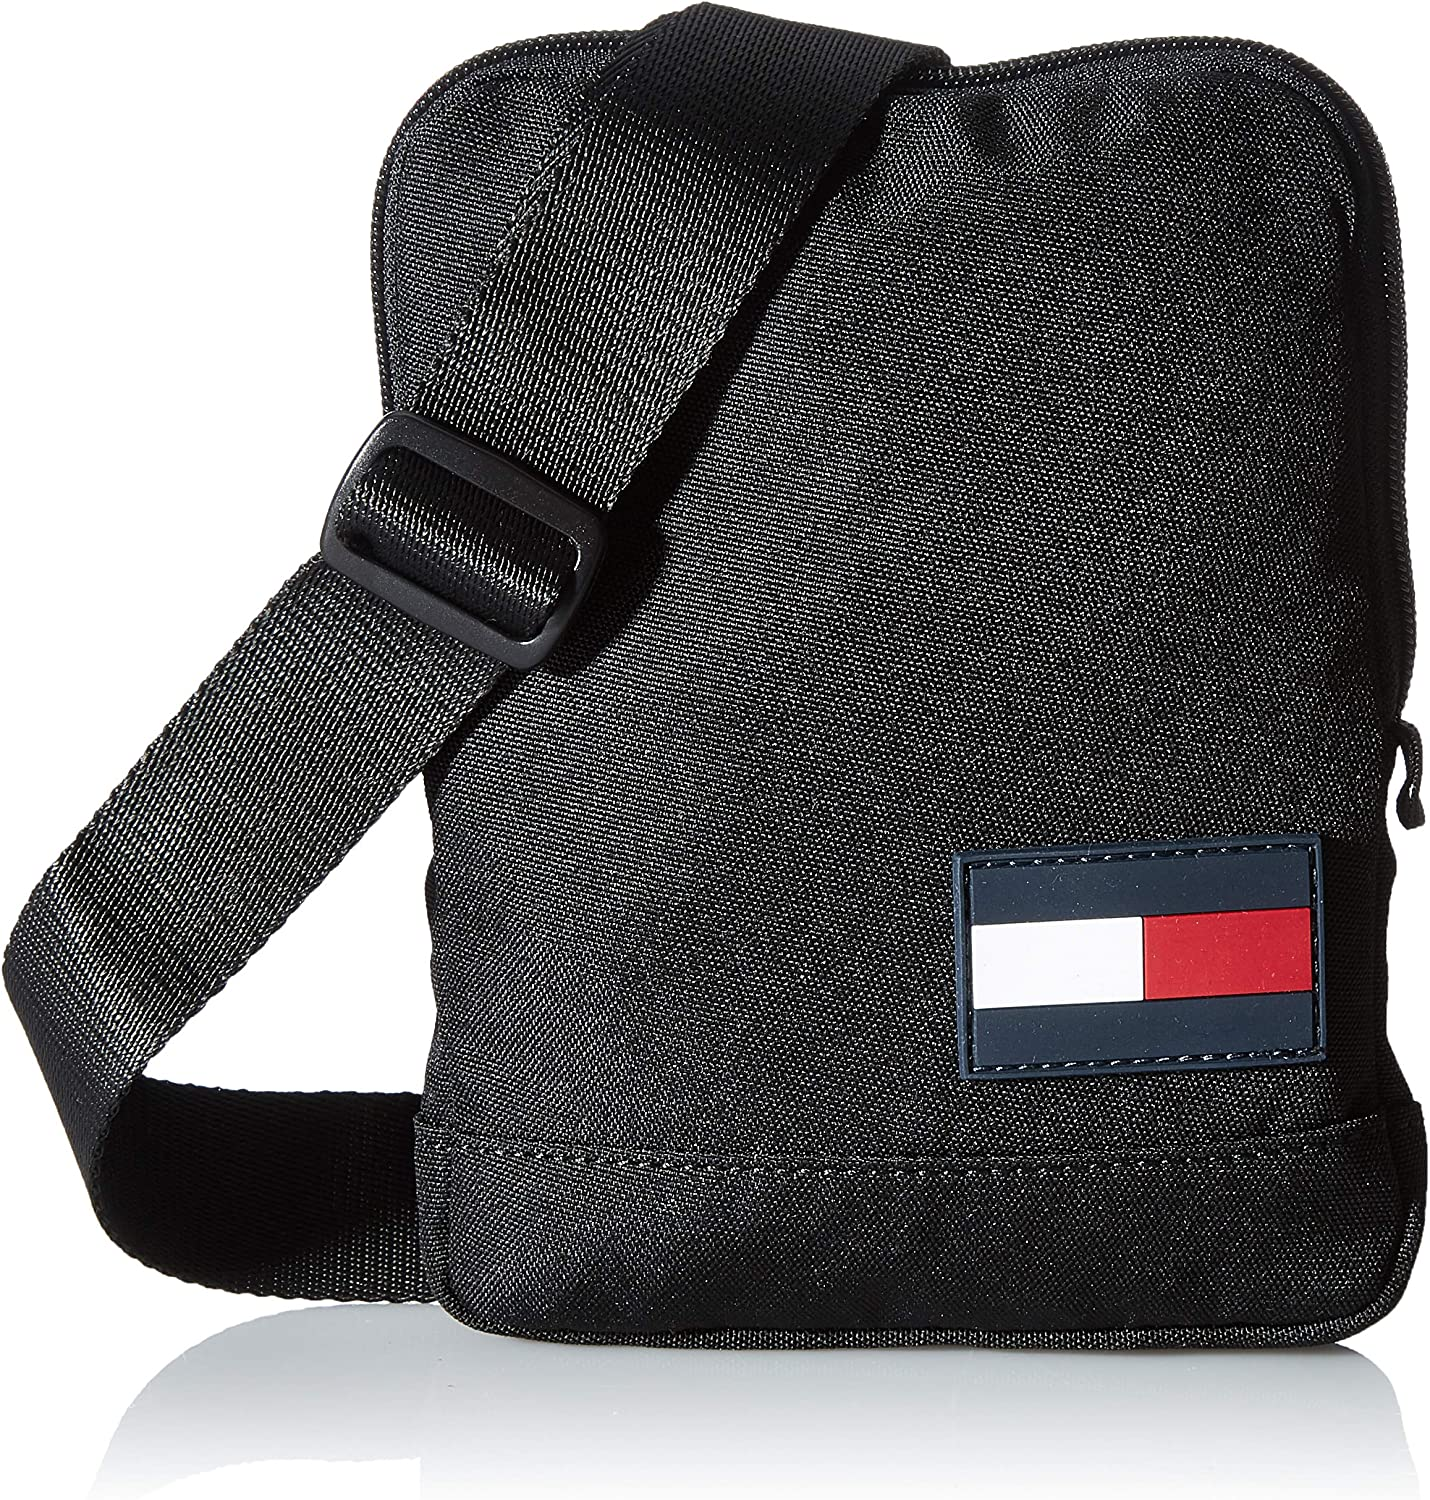 Tommy Hilfiger Men's Tommy CORE Compact Crossover, Black